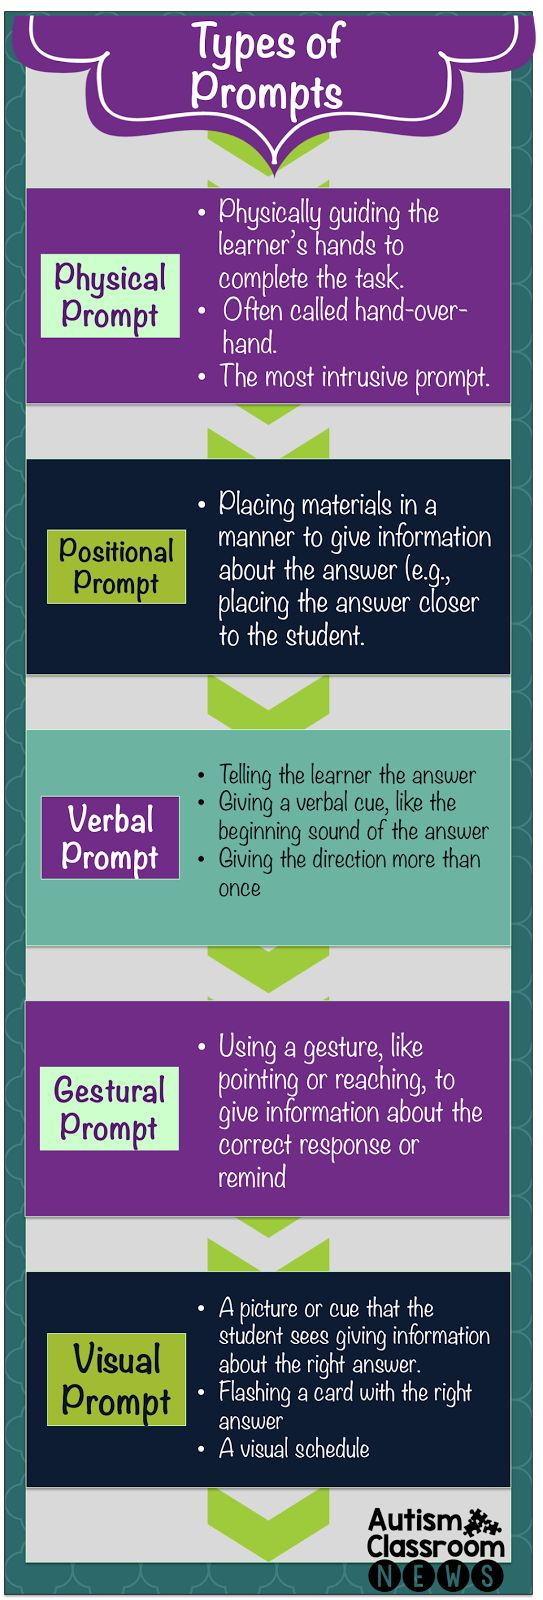 As we are talking about prompts, I thought it important to define prompts before we talk about how to use them and fade them. First, a prompt is anything you add to instruction to help the student get to the right response. This means that it includes pretty much anything that is done after the …